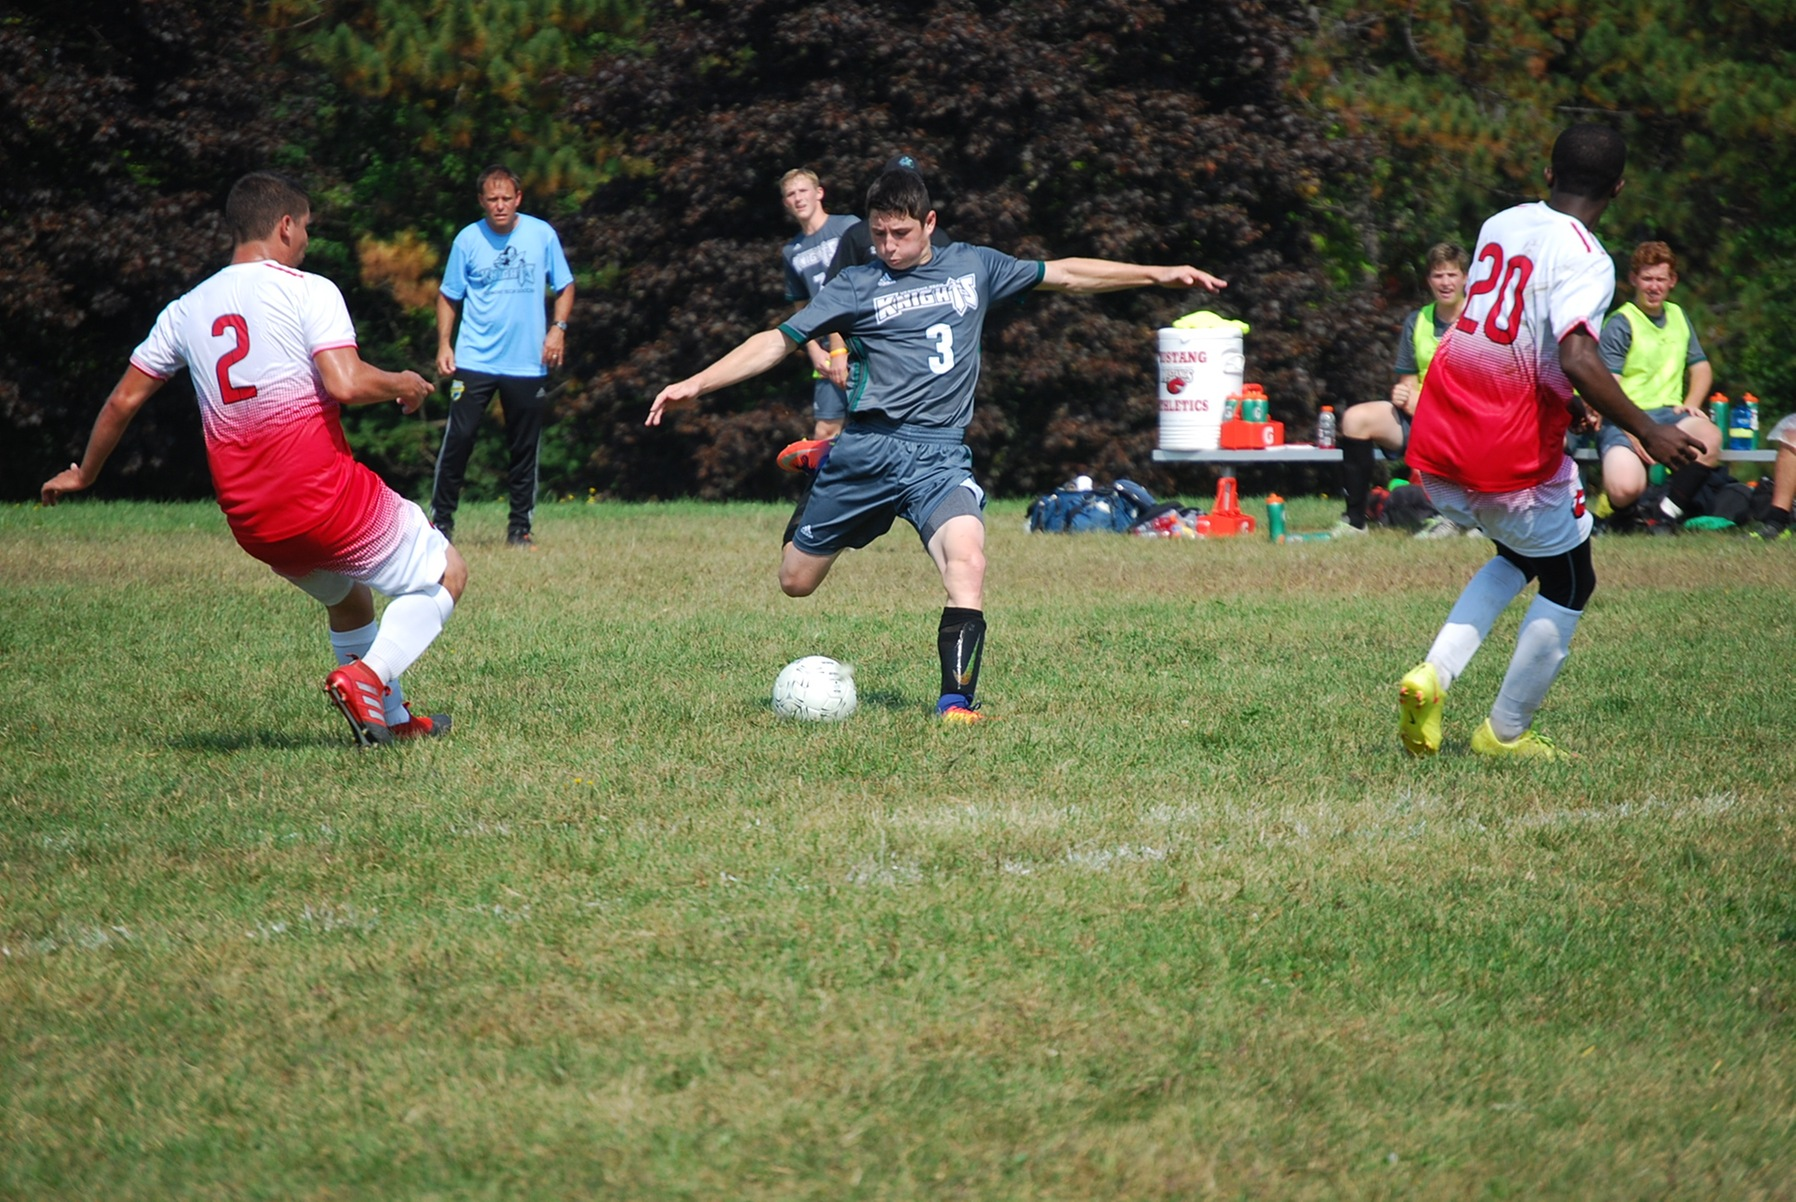 Knights men's soccer falls to Central Maine